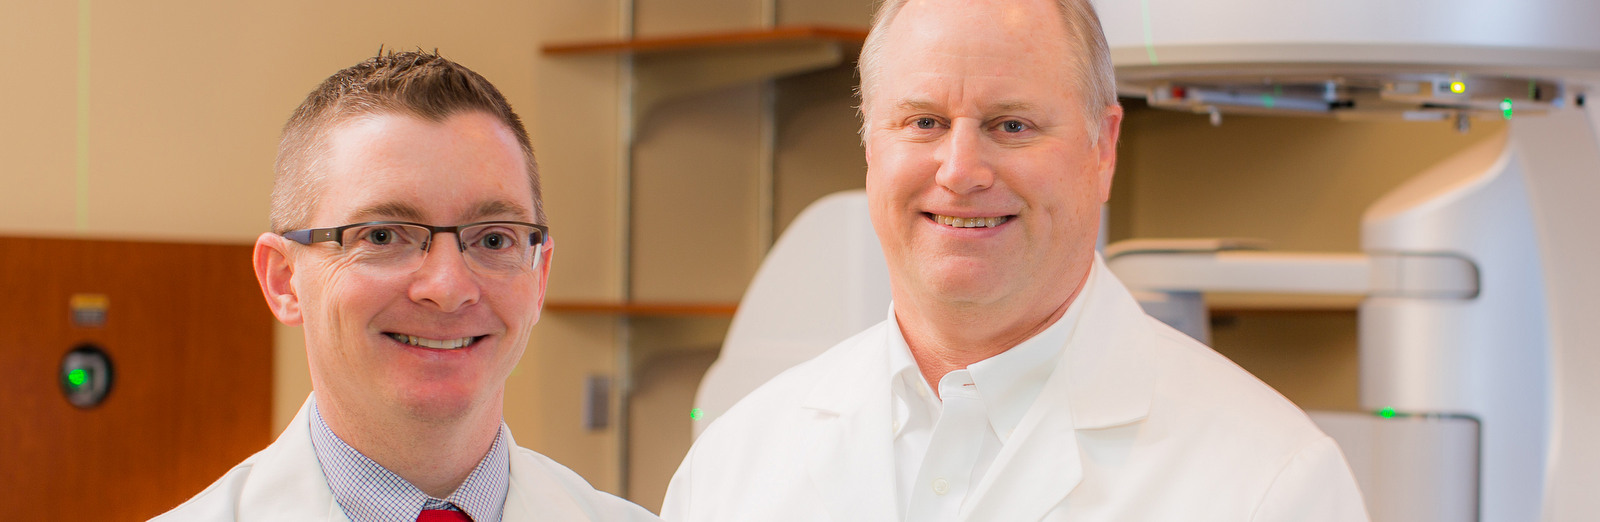 Certified Oncologists. E. Clint Wood, MD and John Funke III, MD at Self Regional Healthcare Cancer Center